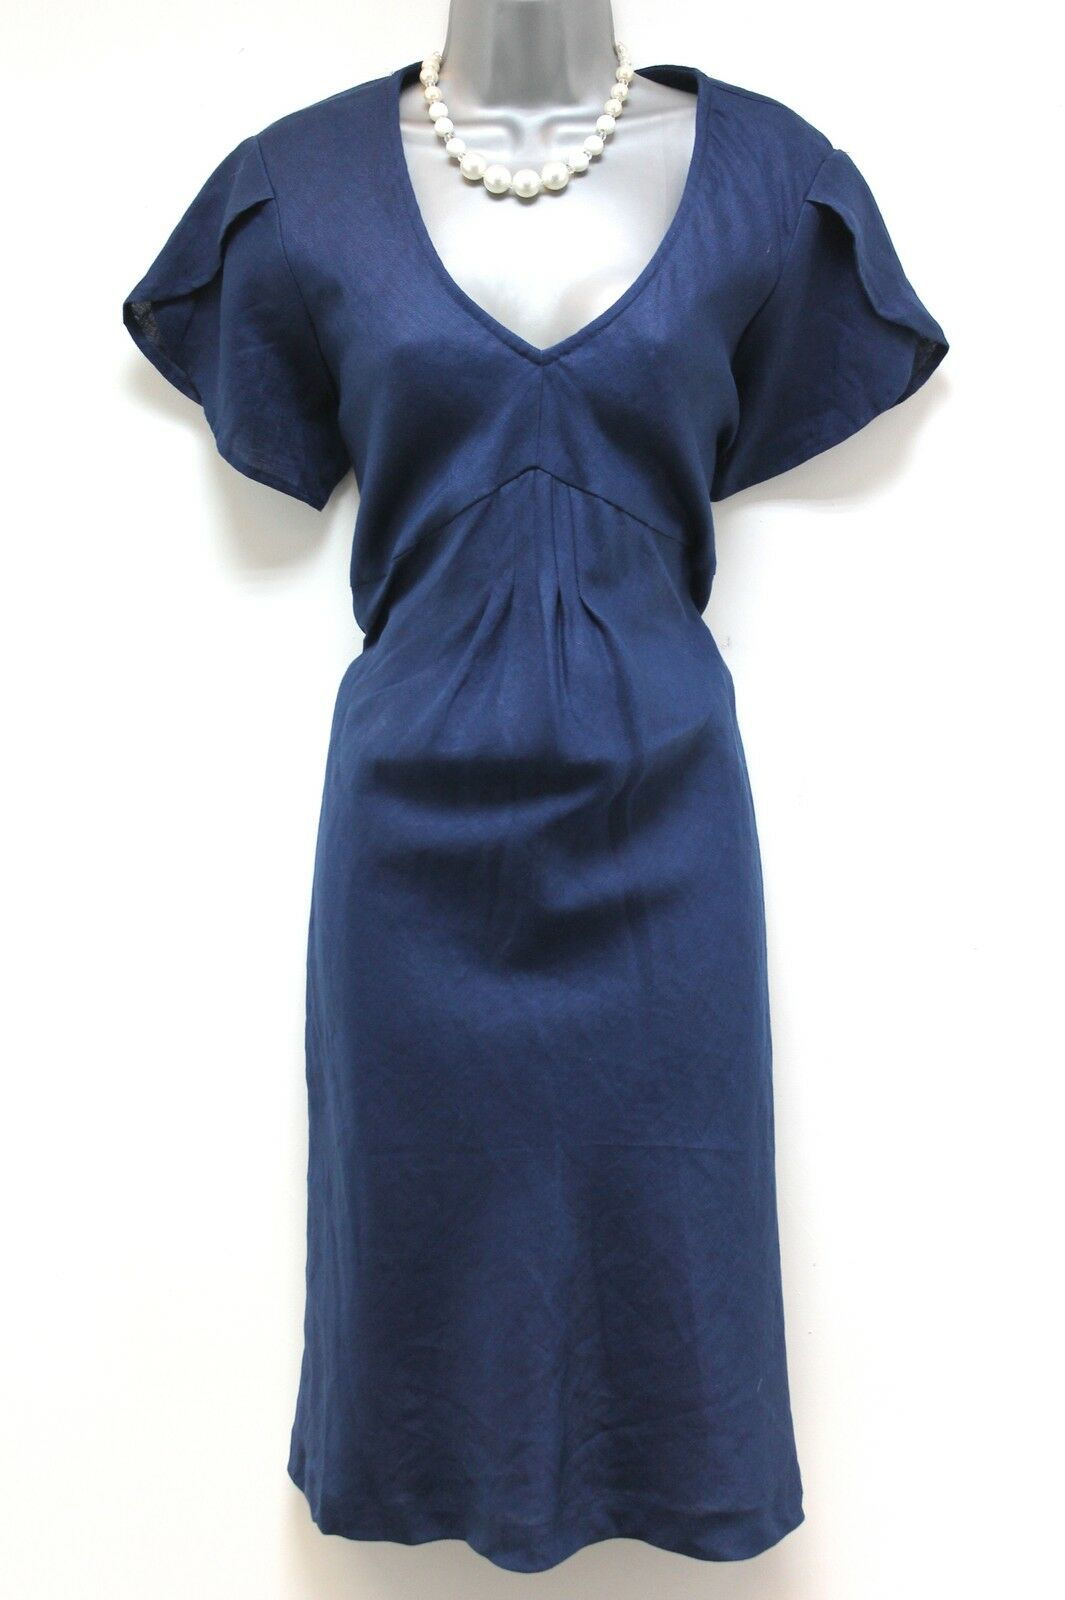 BNWT JoJo Maman Bebe Linen Navy Maternity Day Dress Size 14